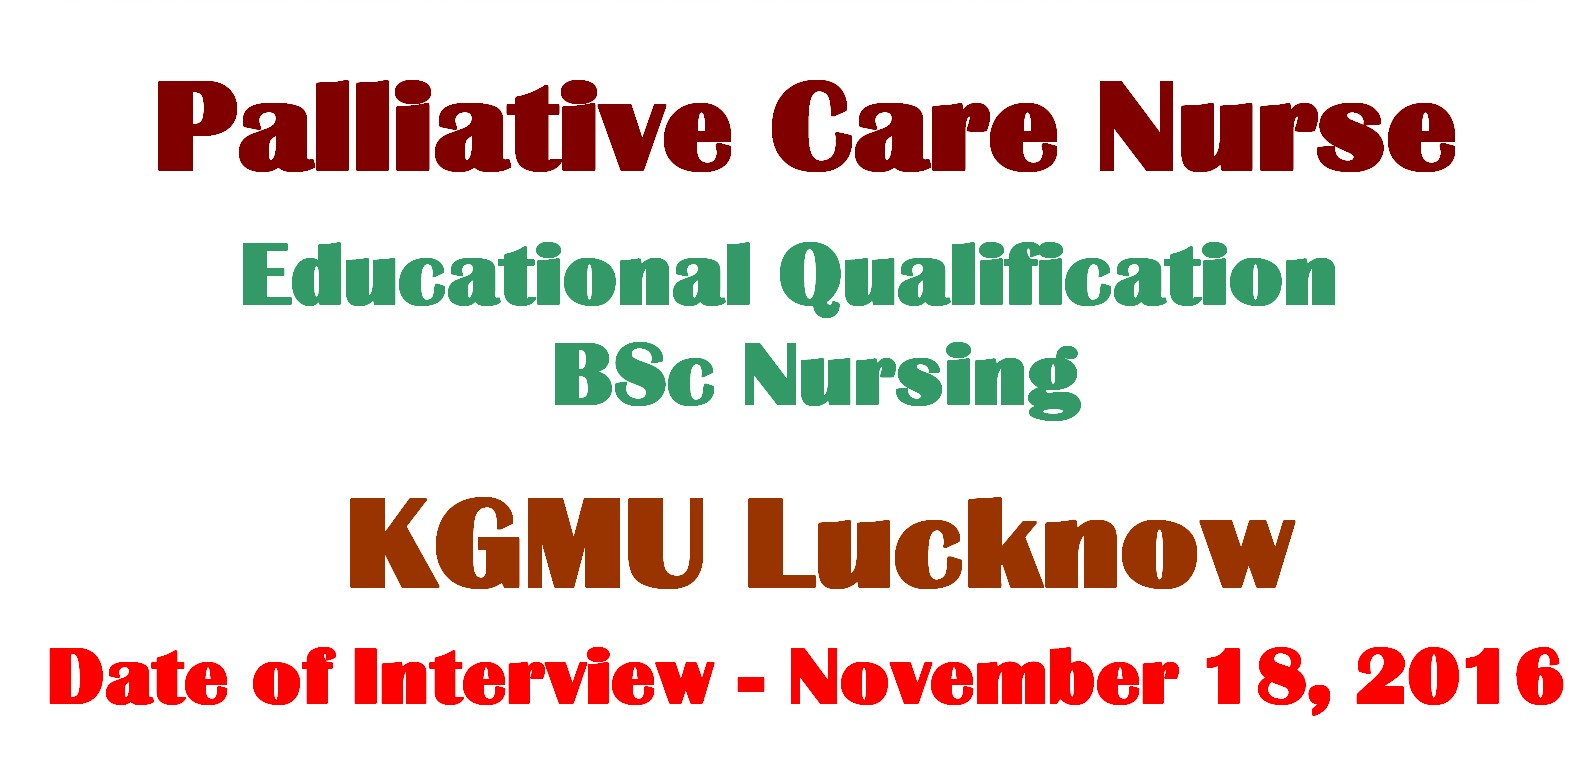 nurses job vacancy staff nurse vacancy in kgmu lucknow 2016 king george medical university kgmu lucknow up has invited applications for filling up the staff nurse posts by walk in interview